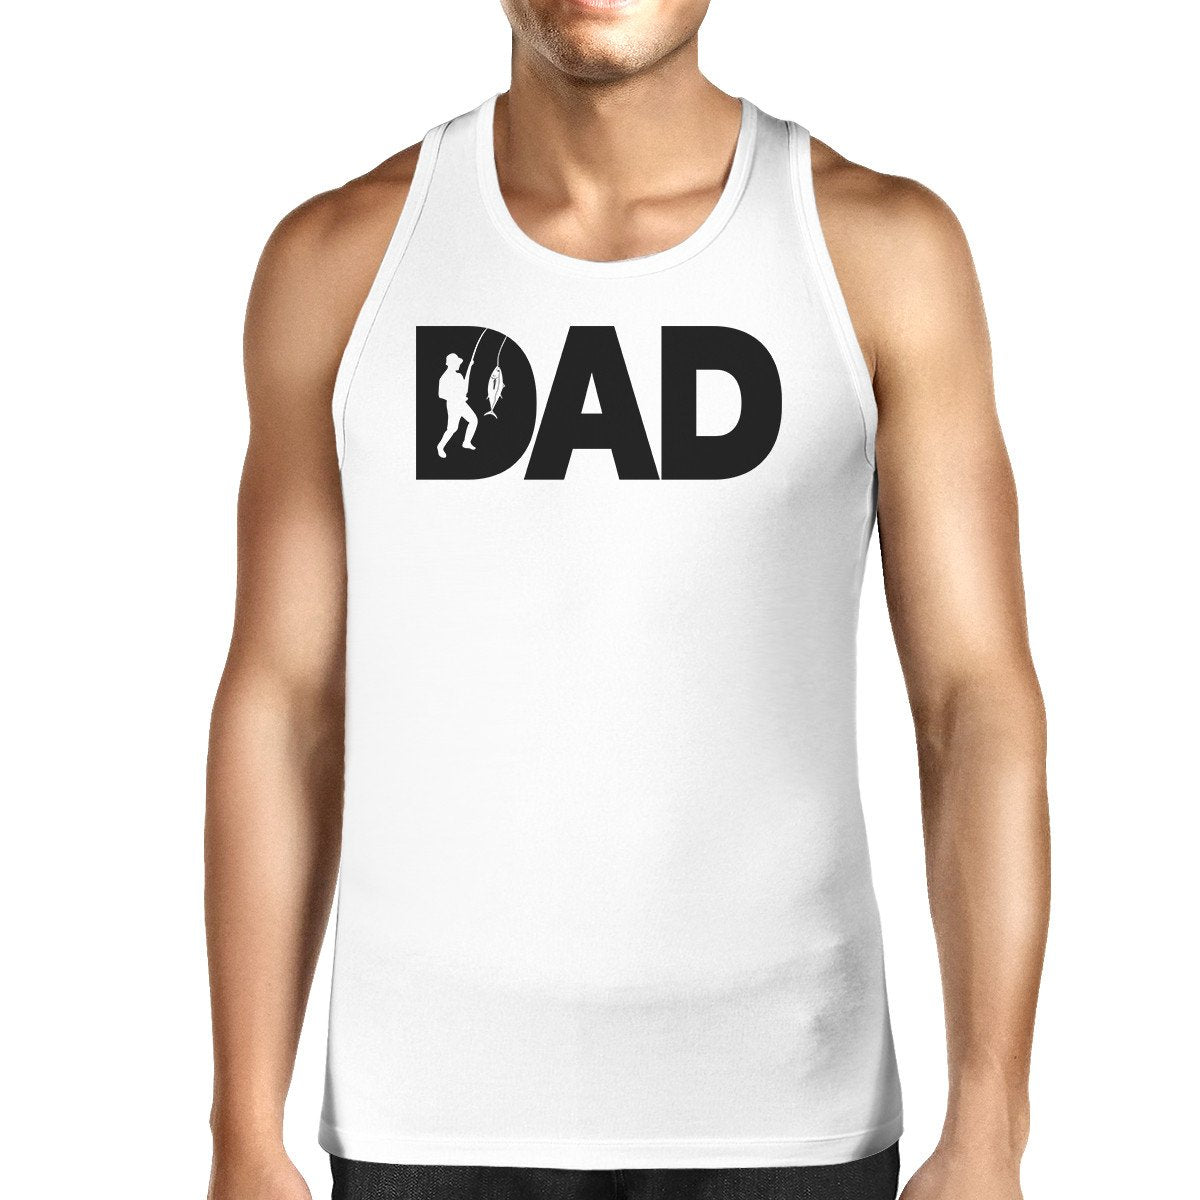 Dad Fish Mens White Graphic Tanks Unique Dad Gifts